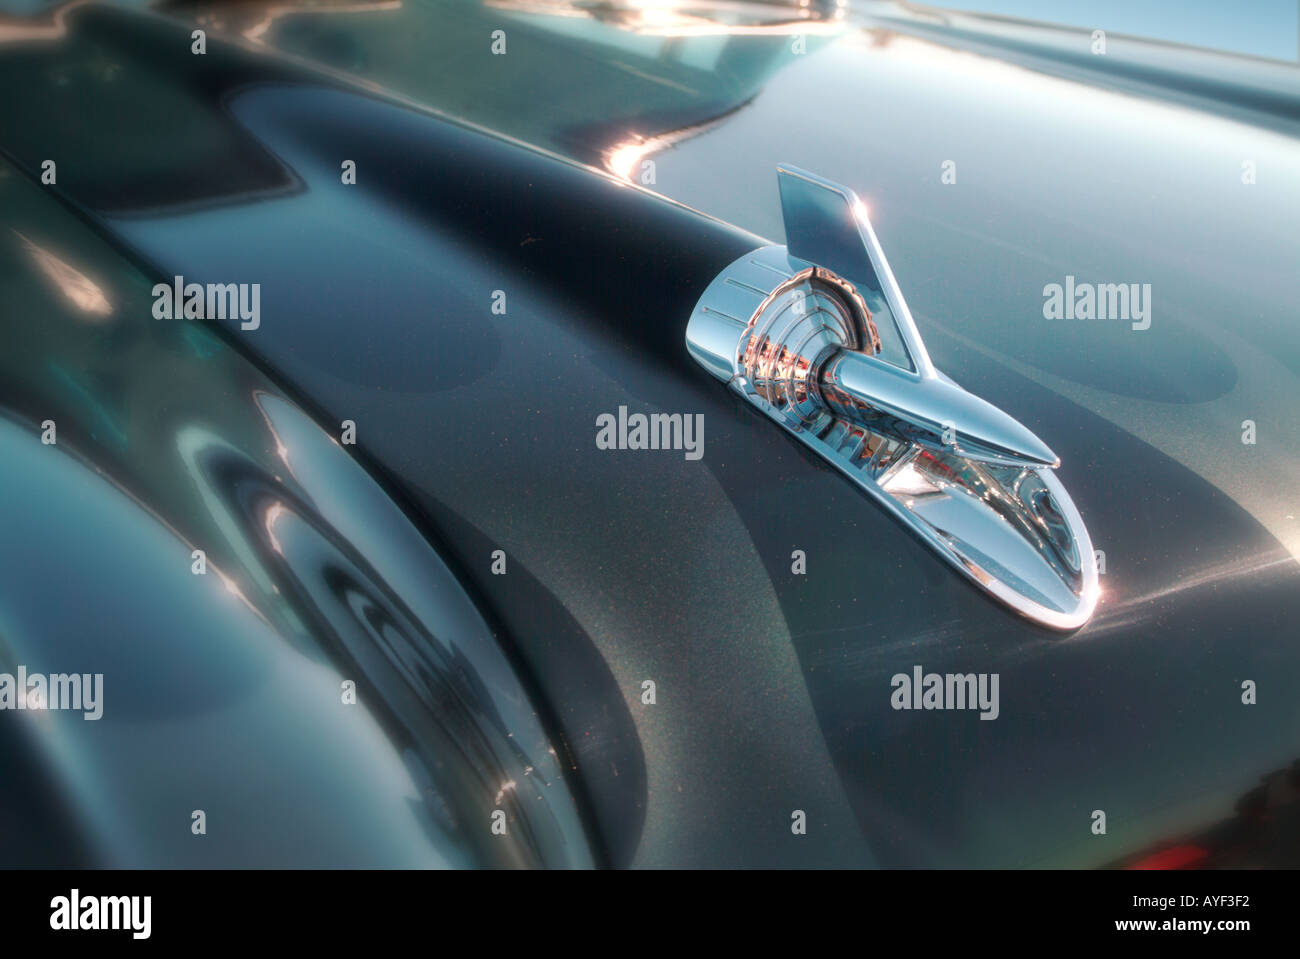 A rocket shaped hood detail on a 57 Chevy Belair - Stock Image